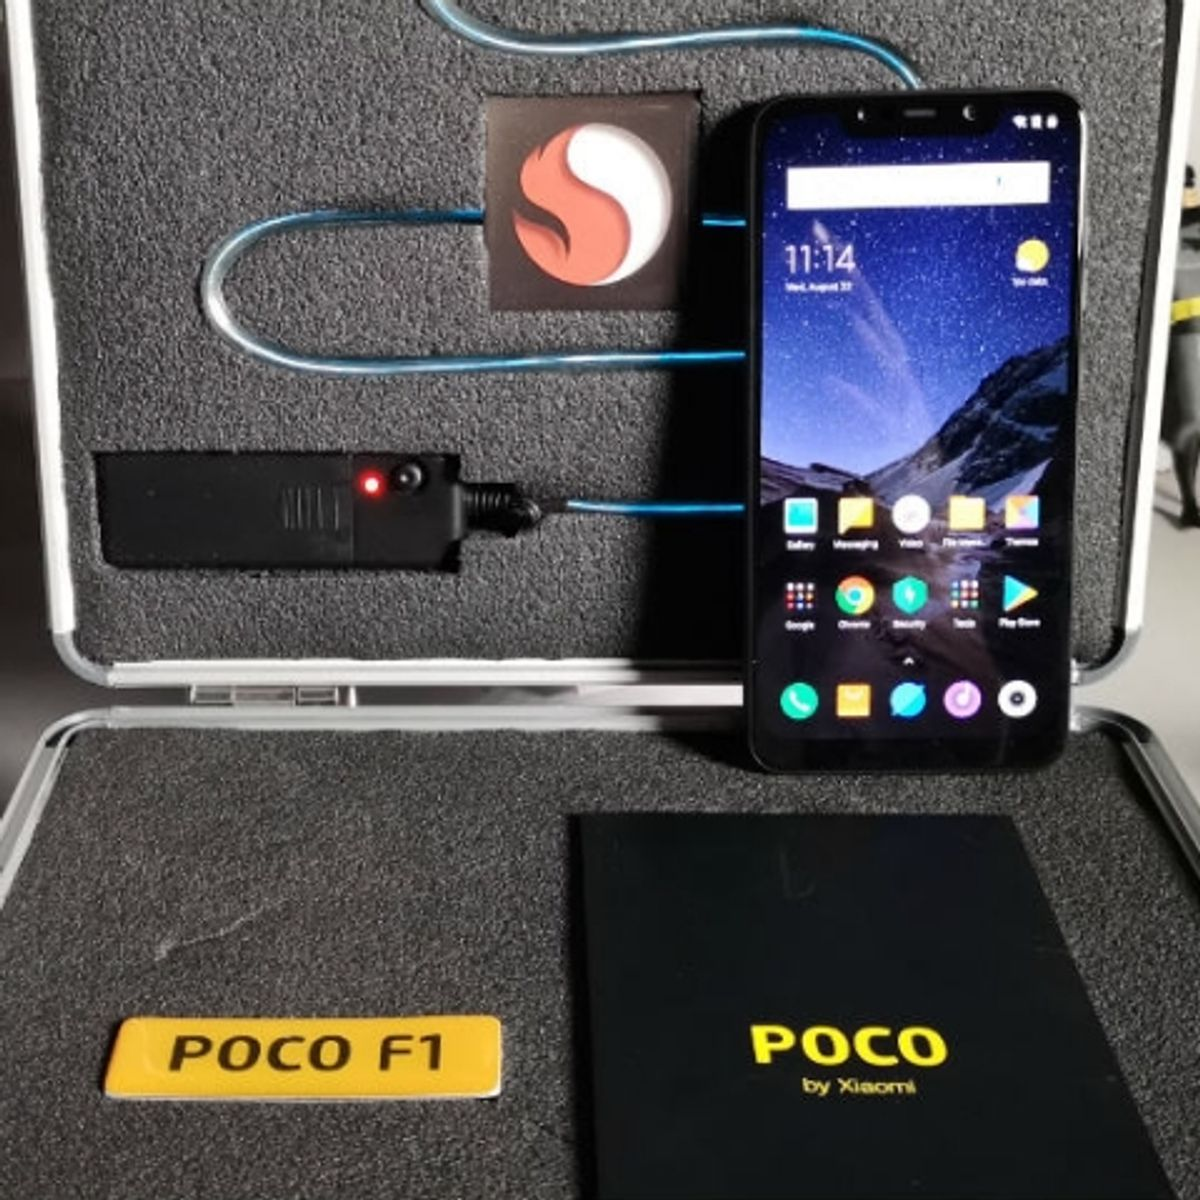 Poco F1 now receiving stable Android 9 Pie based MIUI 10